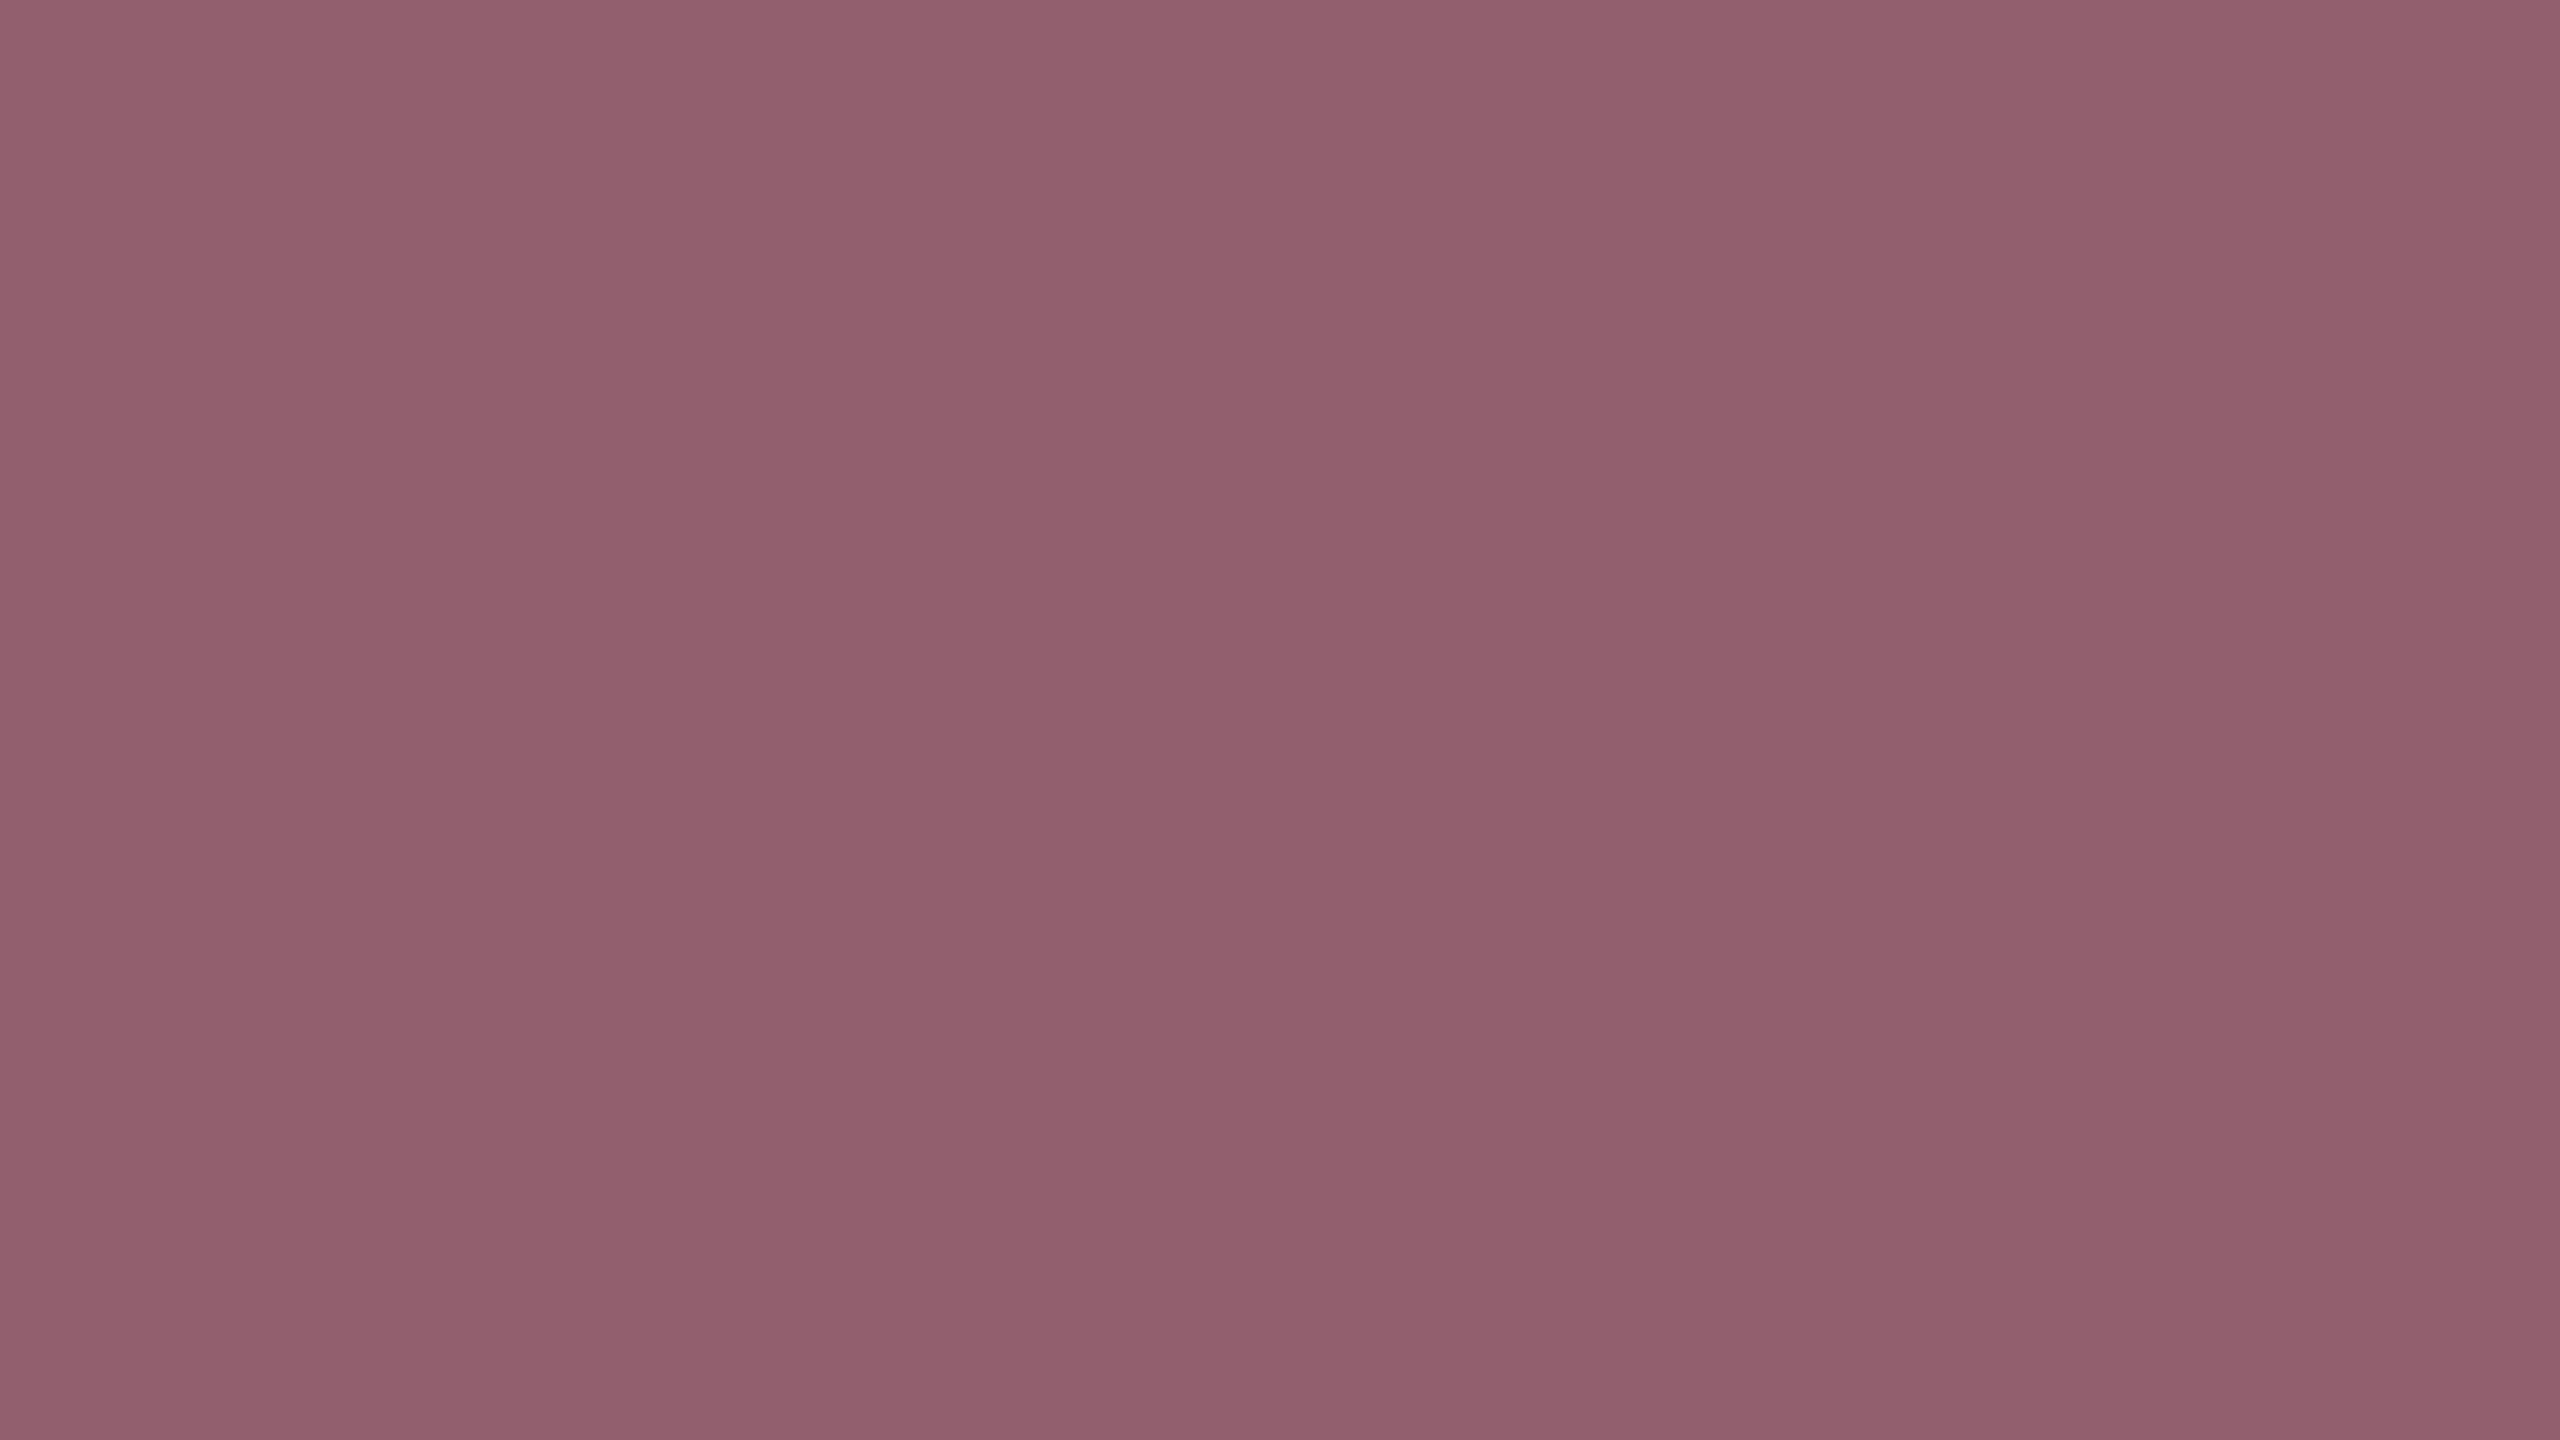 2560x1440 Mauve Taupe Solid Color Background